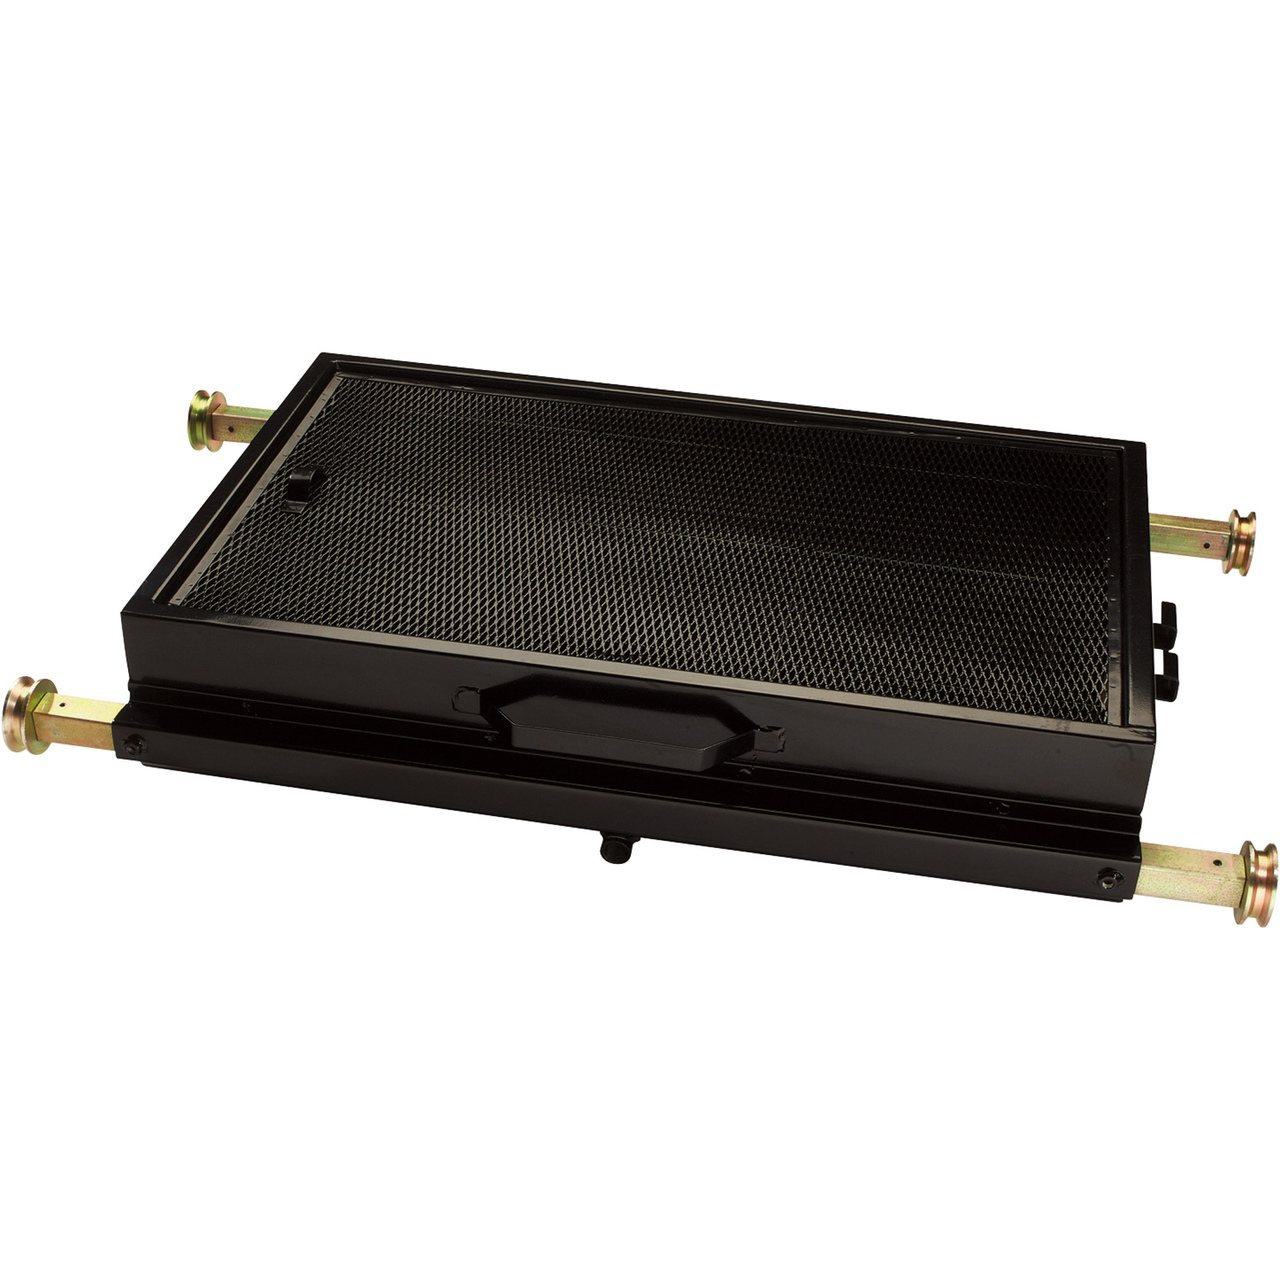 Bendpak DP-30 18 Gallon Rolling Drain Pan